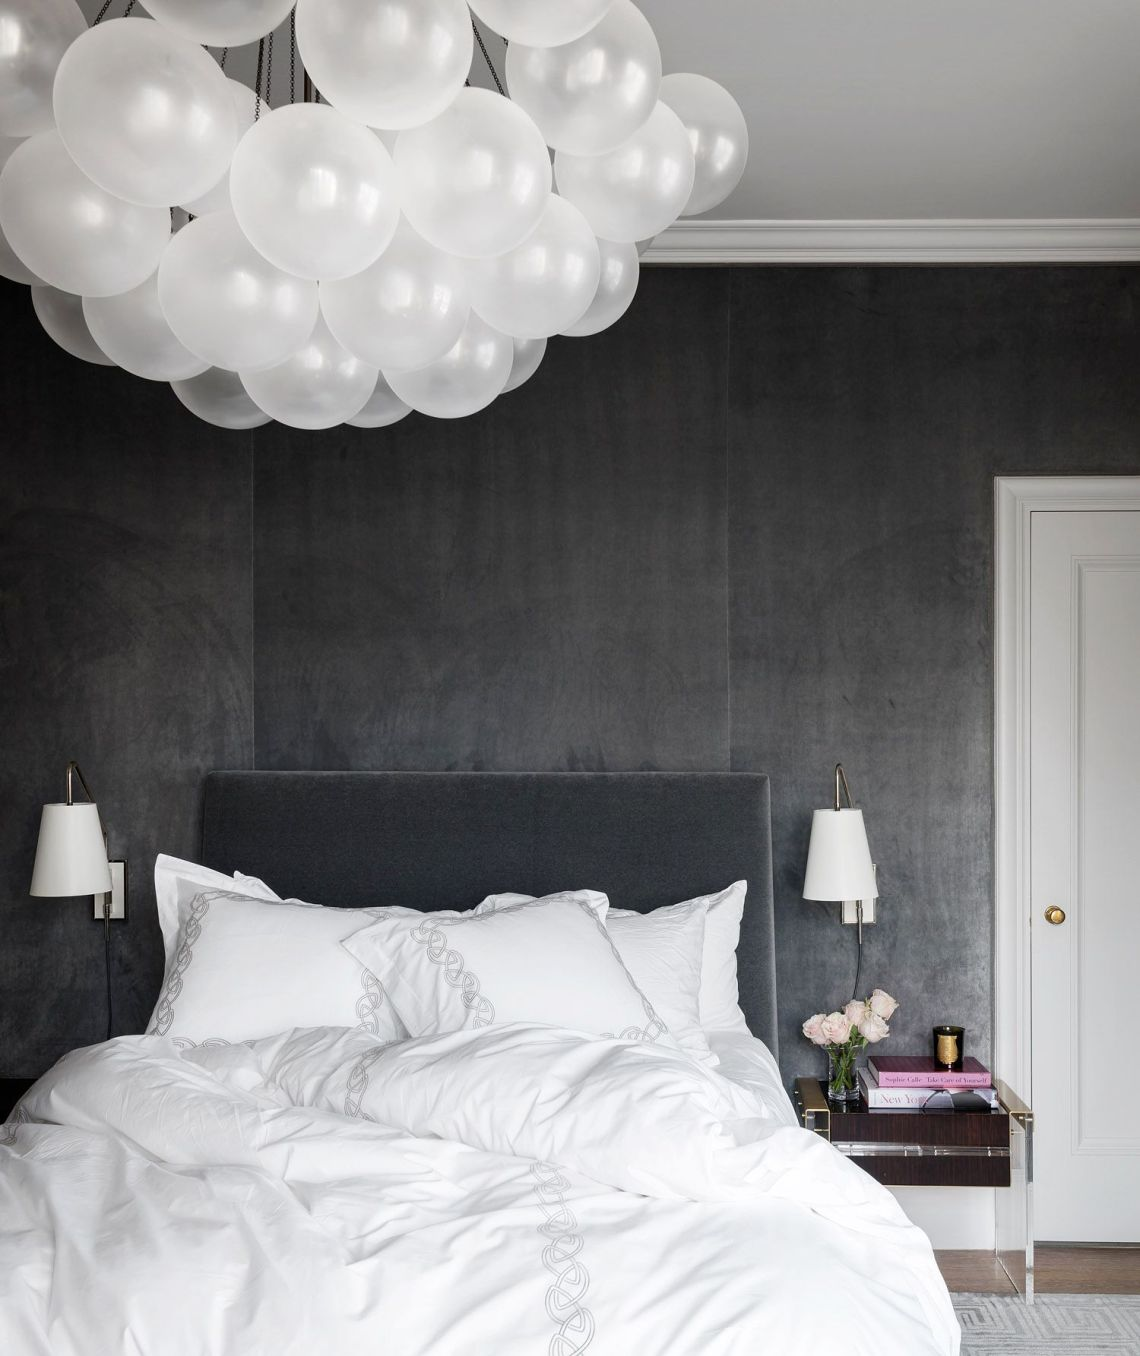 22 Romantic Bedroom Ideas - Sexy Bedroom Style Tips and Decor